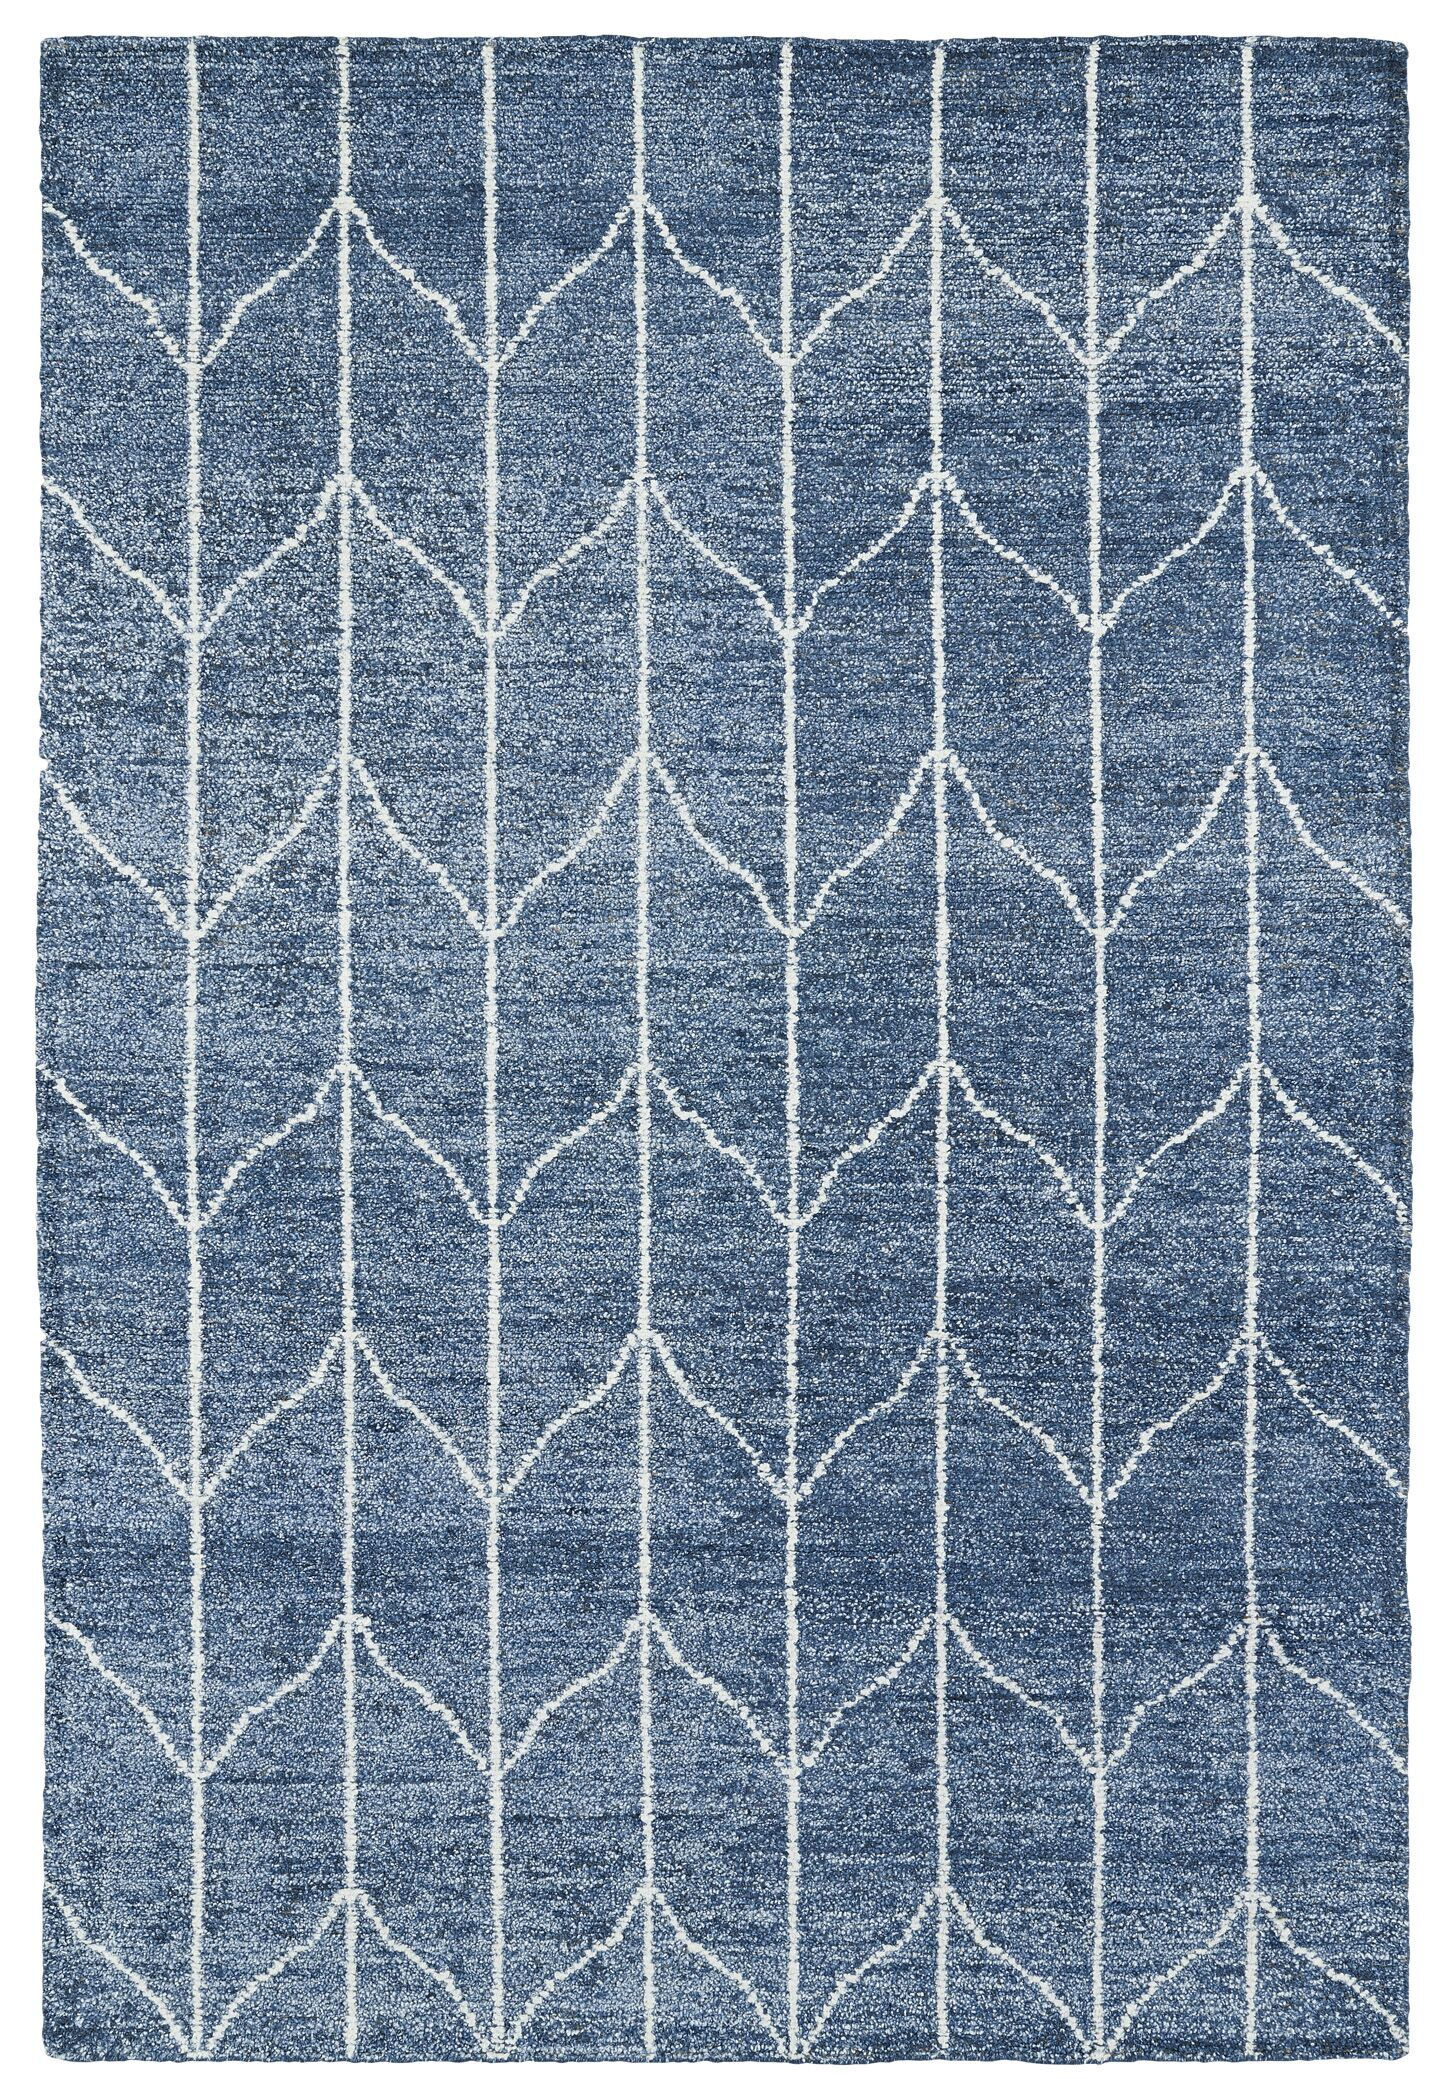 Hand Woven Denim Blue/Ivory Area Rug Rug Size: Rectangle 5' x 7'9